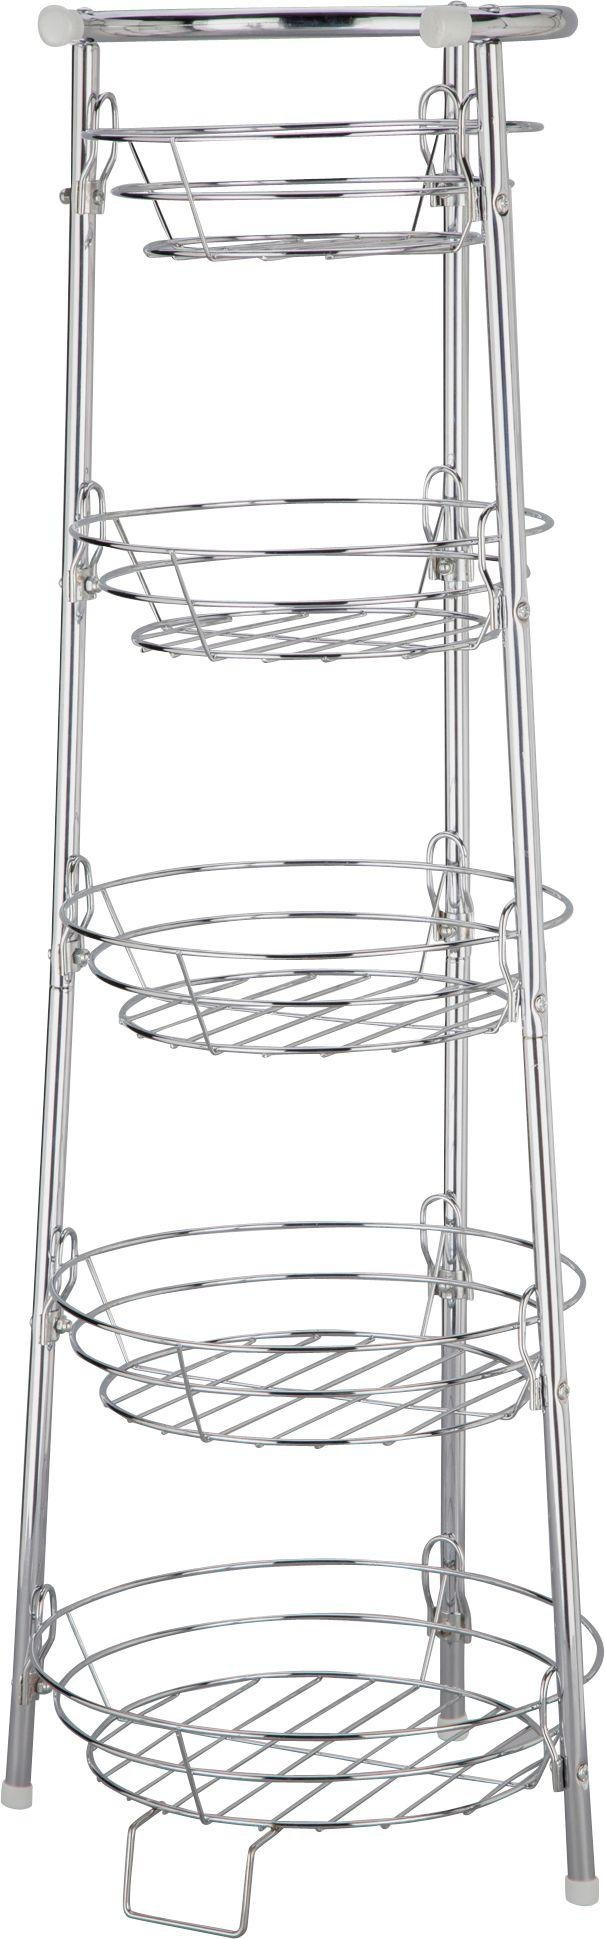 Image of HOME - 5 Tier Chrome Finish Vegetable Stand